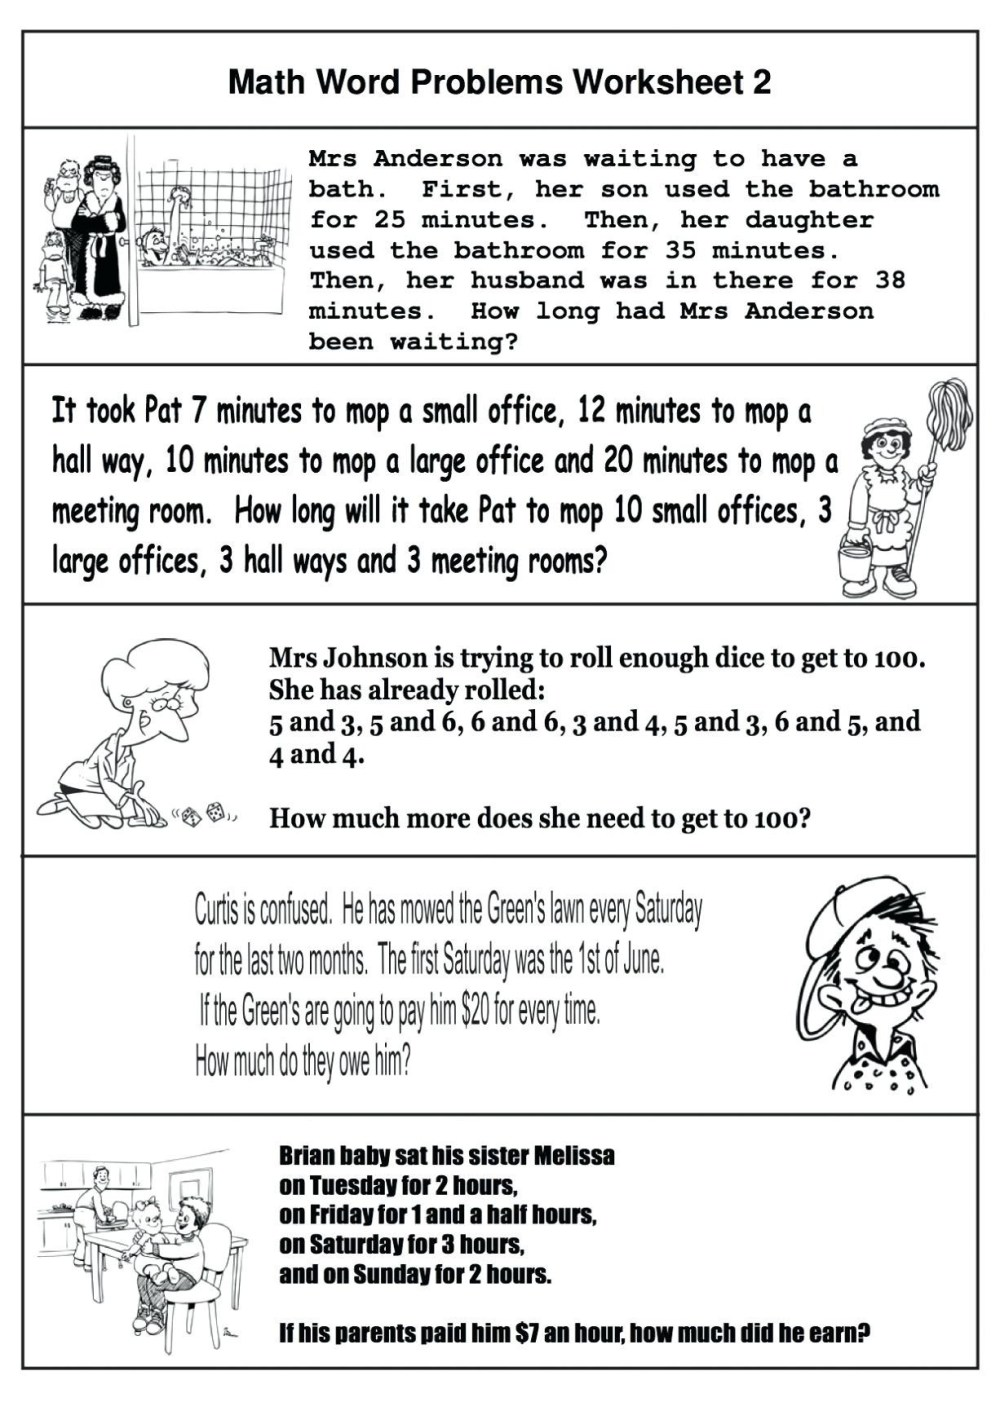 medium resolution of 5 Free Math Worksheets Fourth Grade 4 Addition Adding 3 Digit and 1 Digit  Numbers - apocalomegaproductions.com